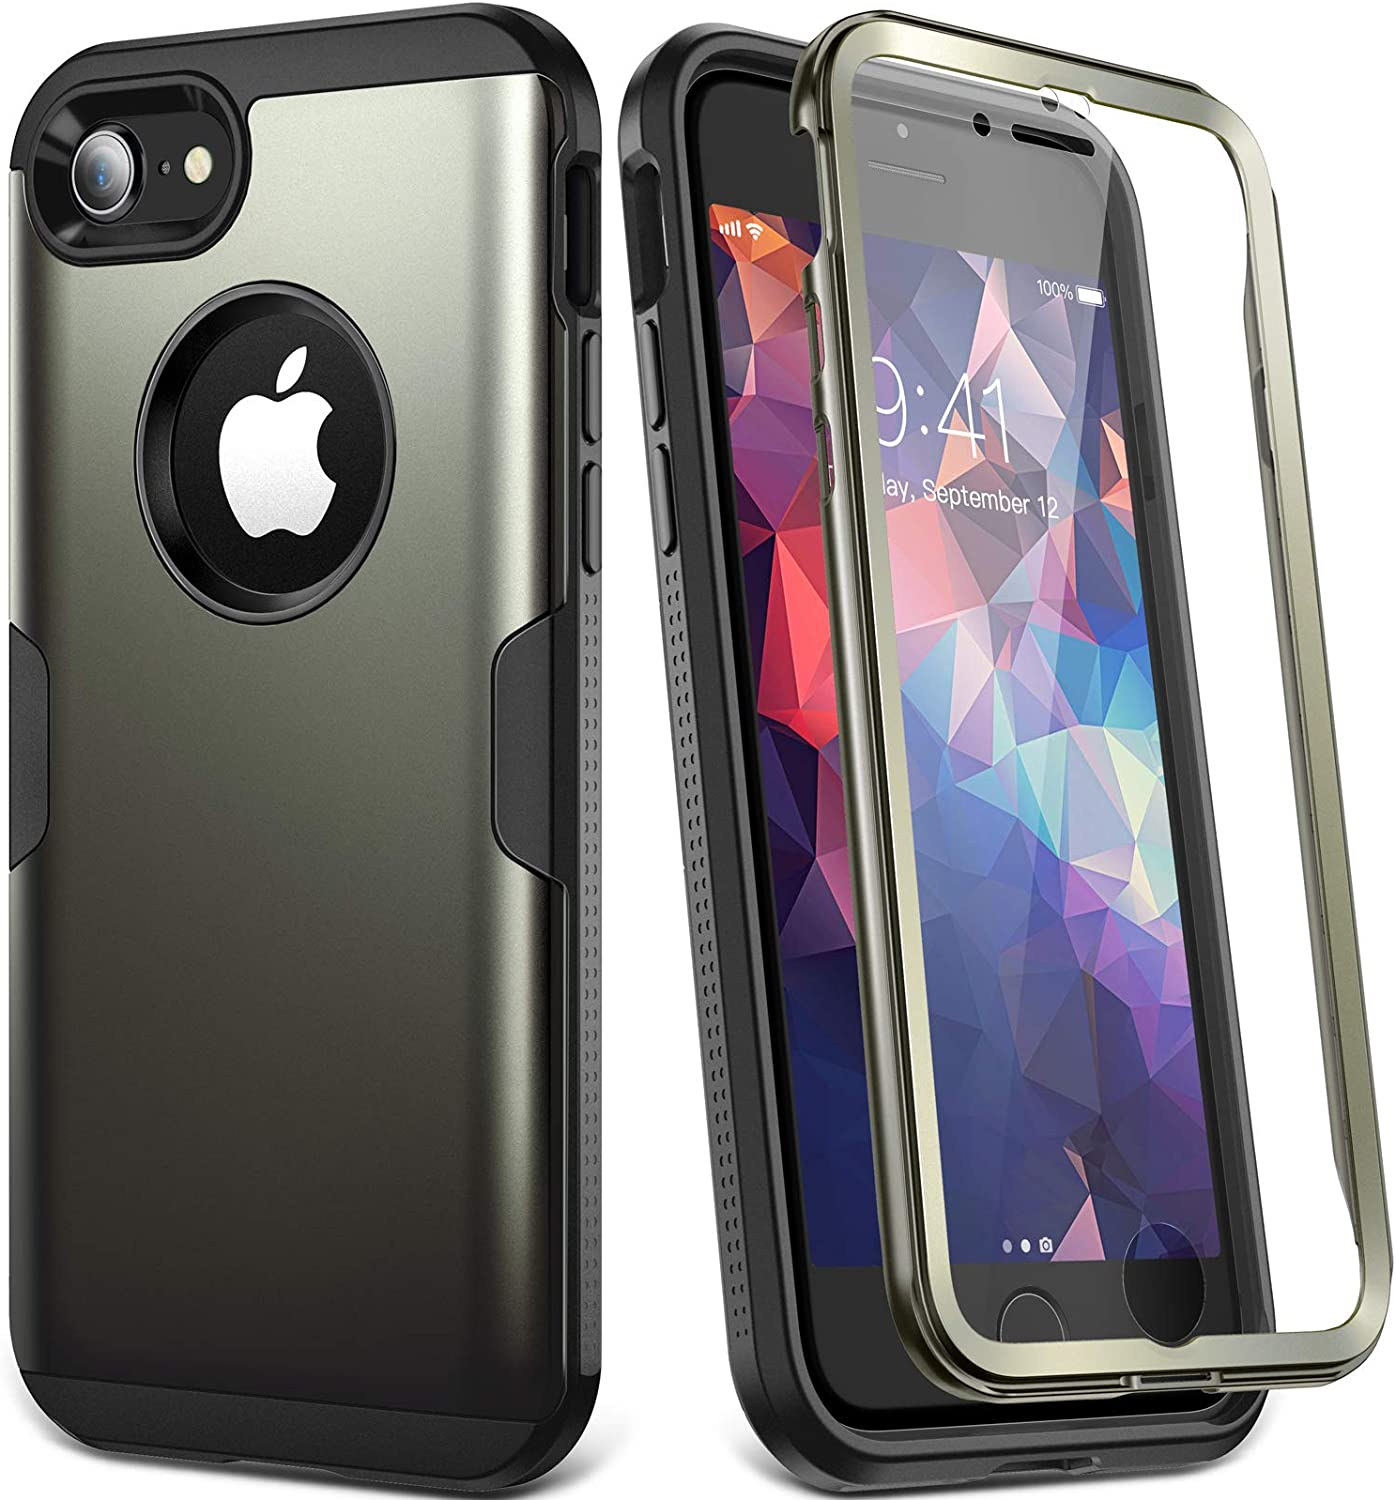 YOUMAKER Metallic Designed for for iPhone 8 & iPhone 7, Full Body Rugged with Built-in Screen Protector Heavy Duty Protection Slim Fit Shockproof Cover for Apple iPhone 8 (2017) 4.7 Inch - Gun